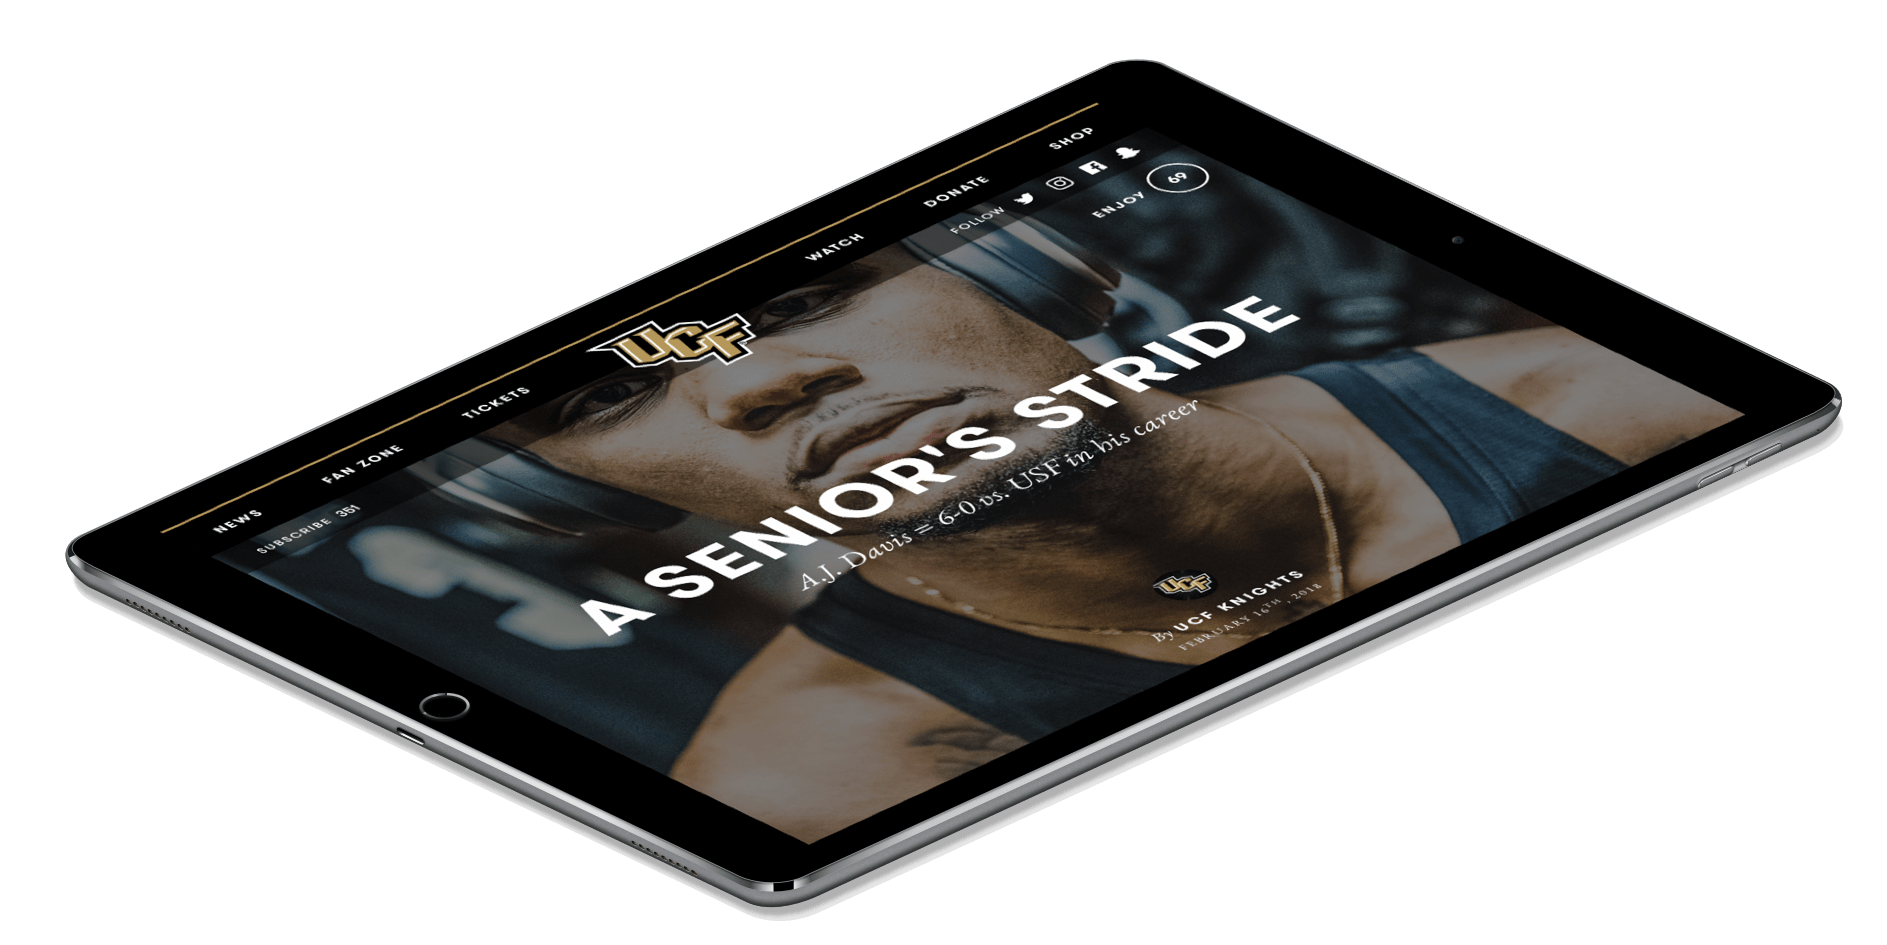 For sports footer ipad